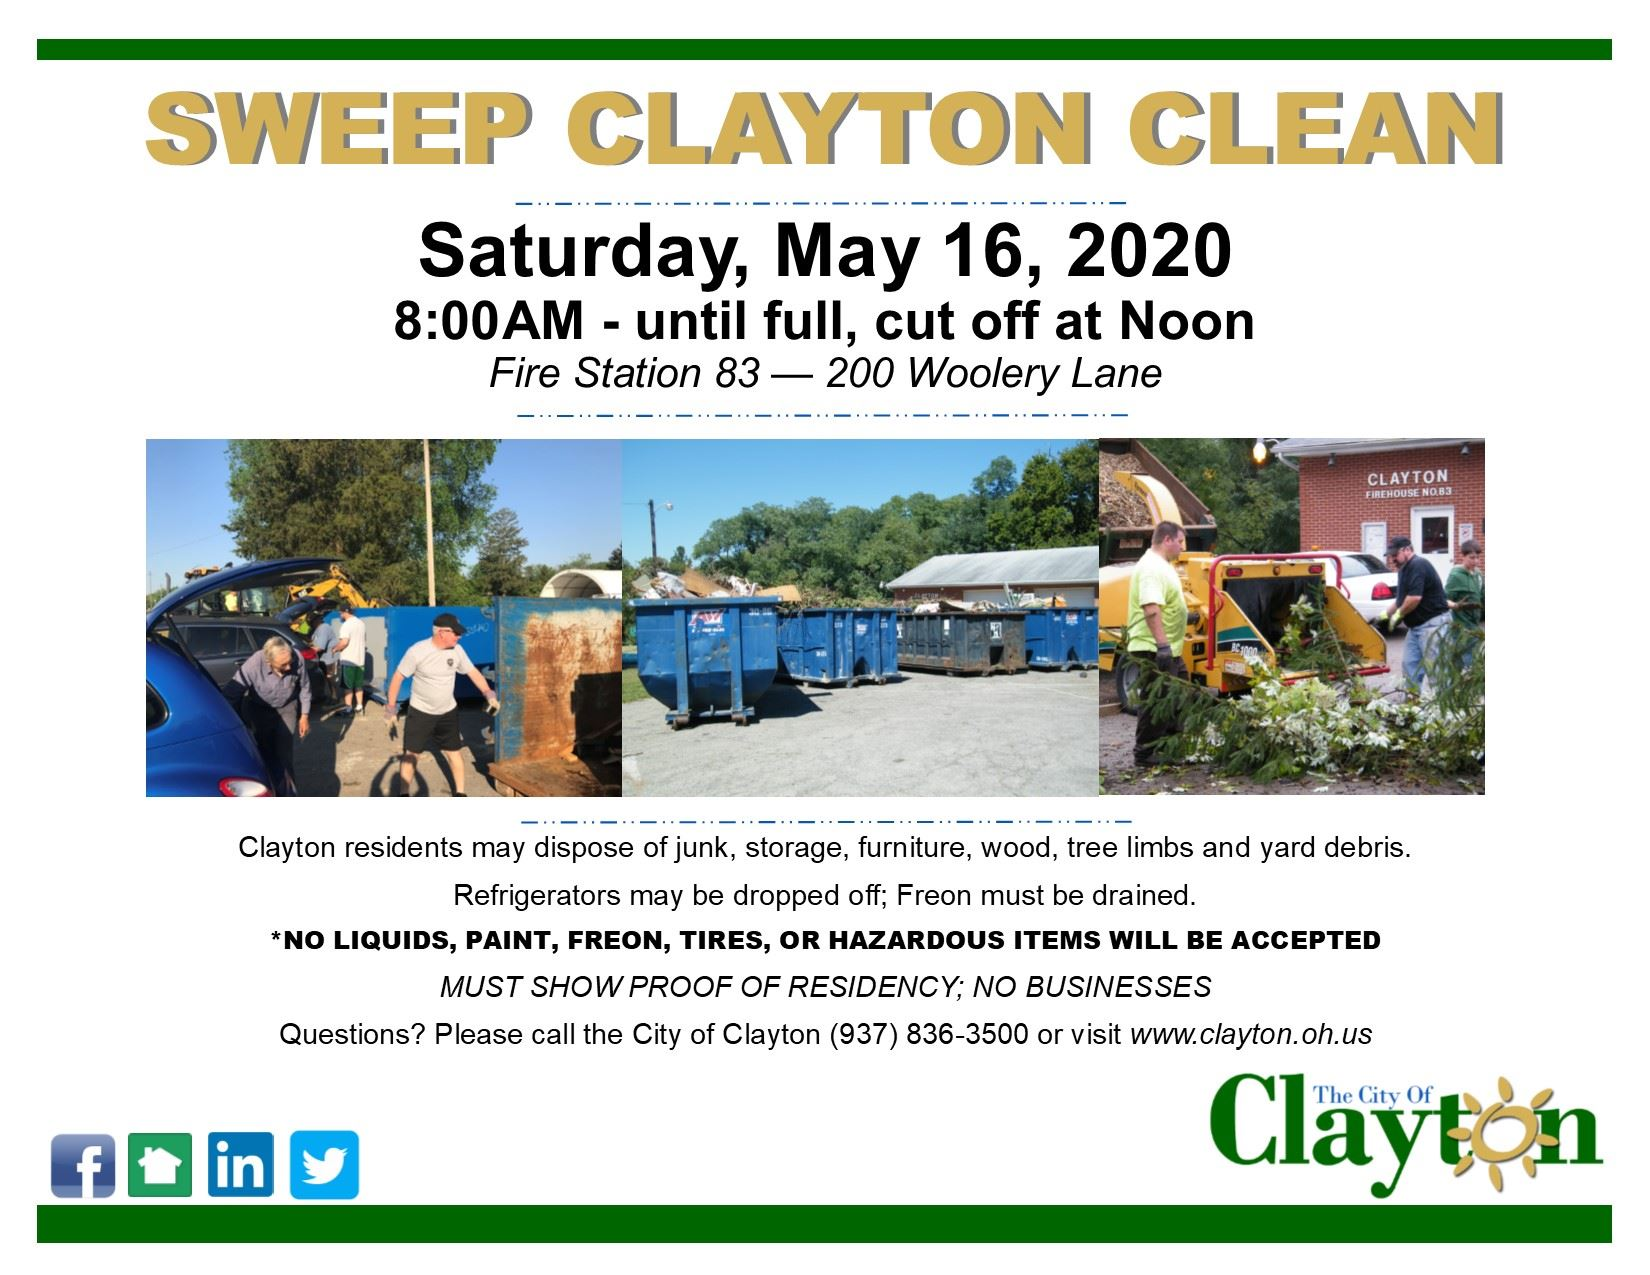 Sweep Clayton Clean Flyer - May 2020